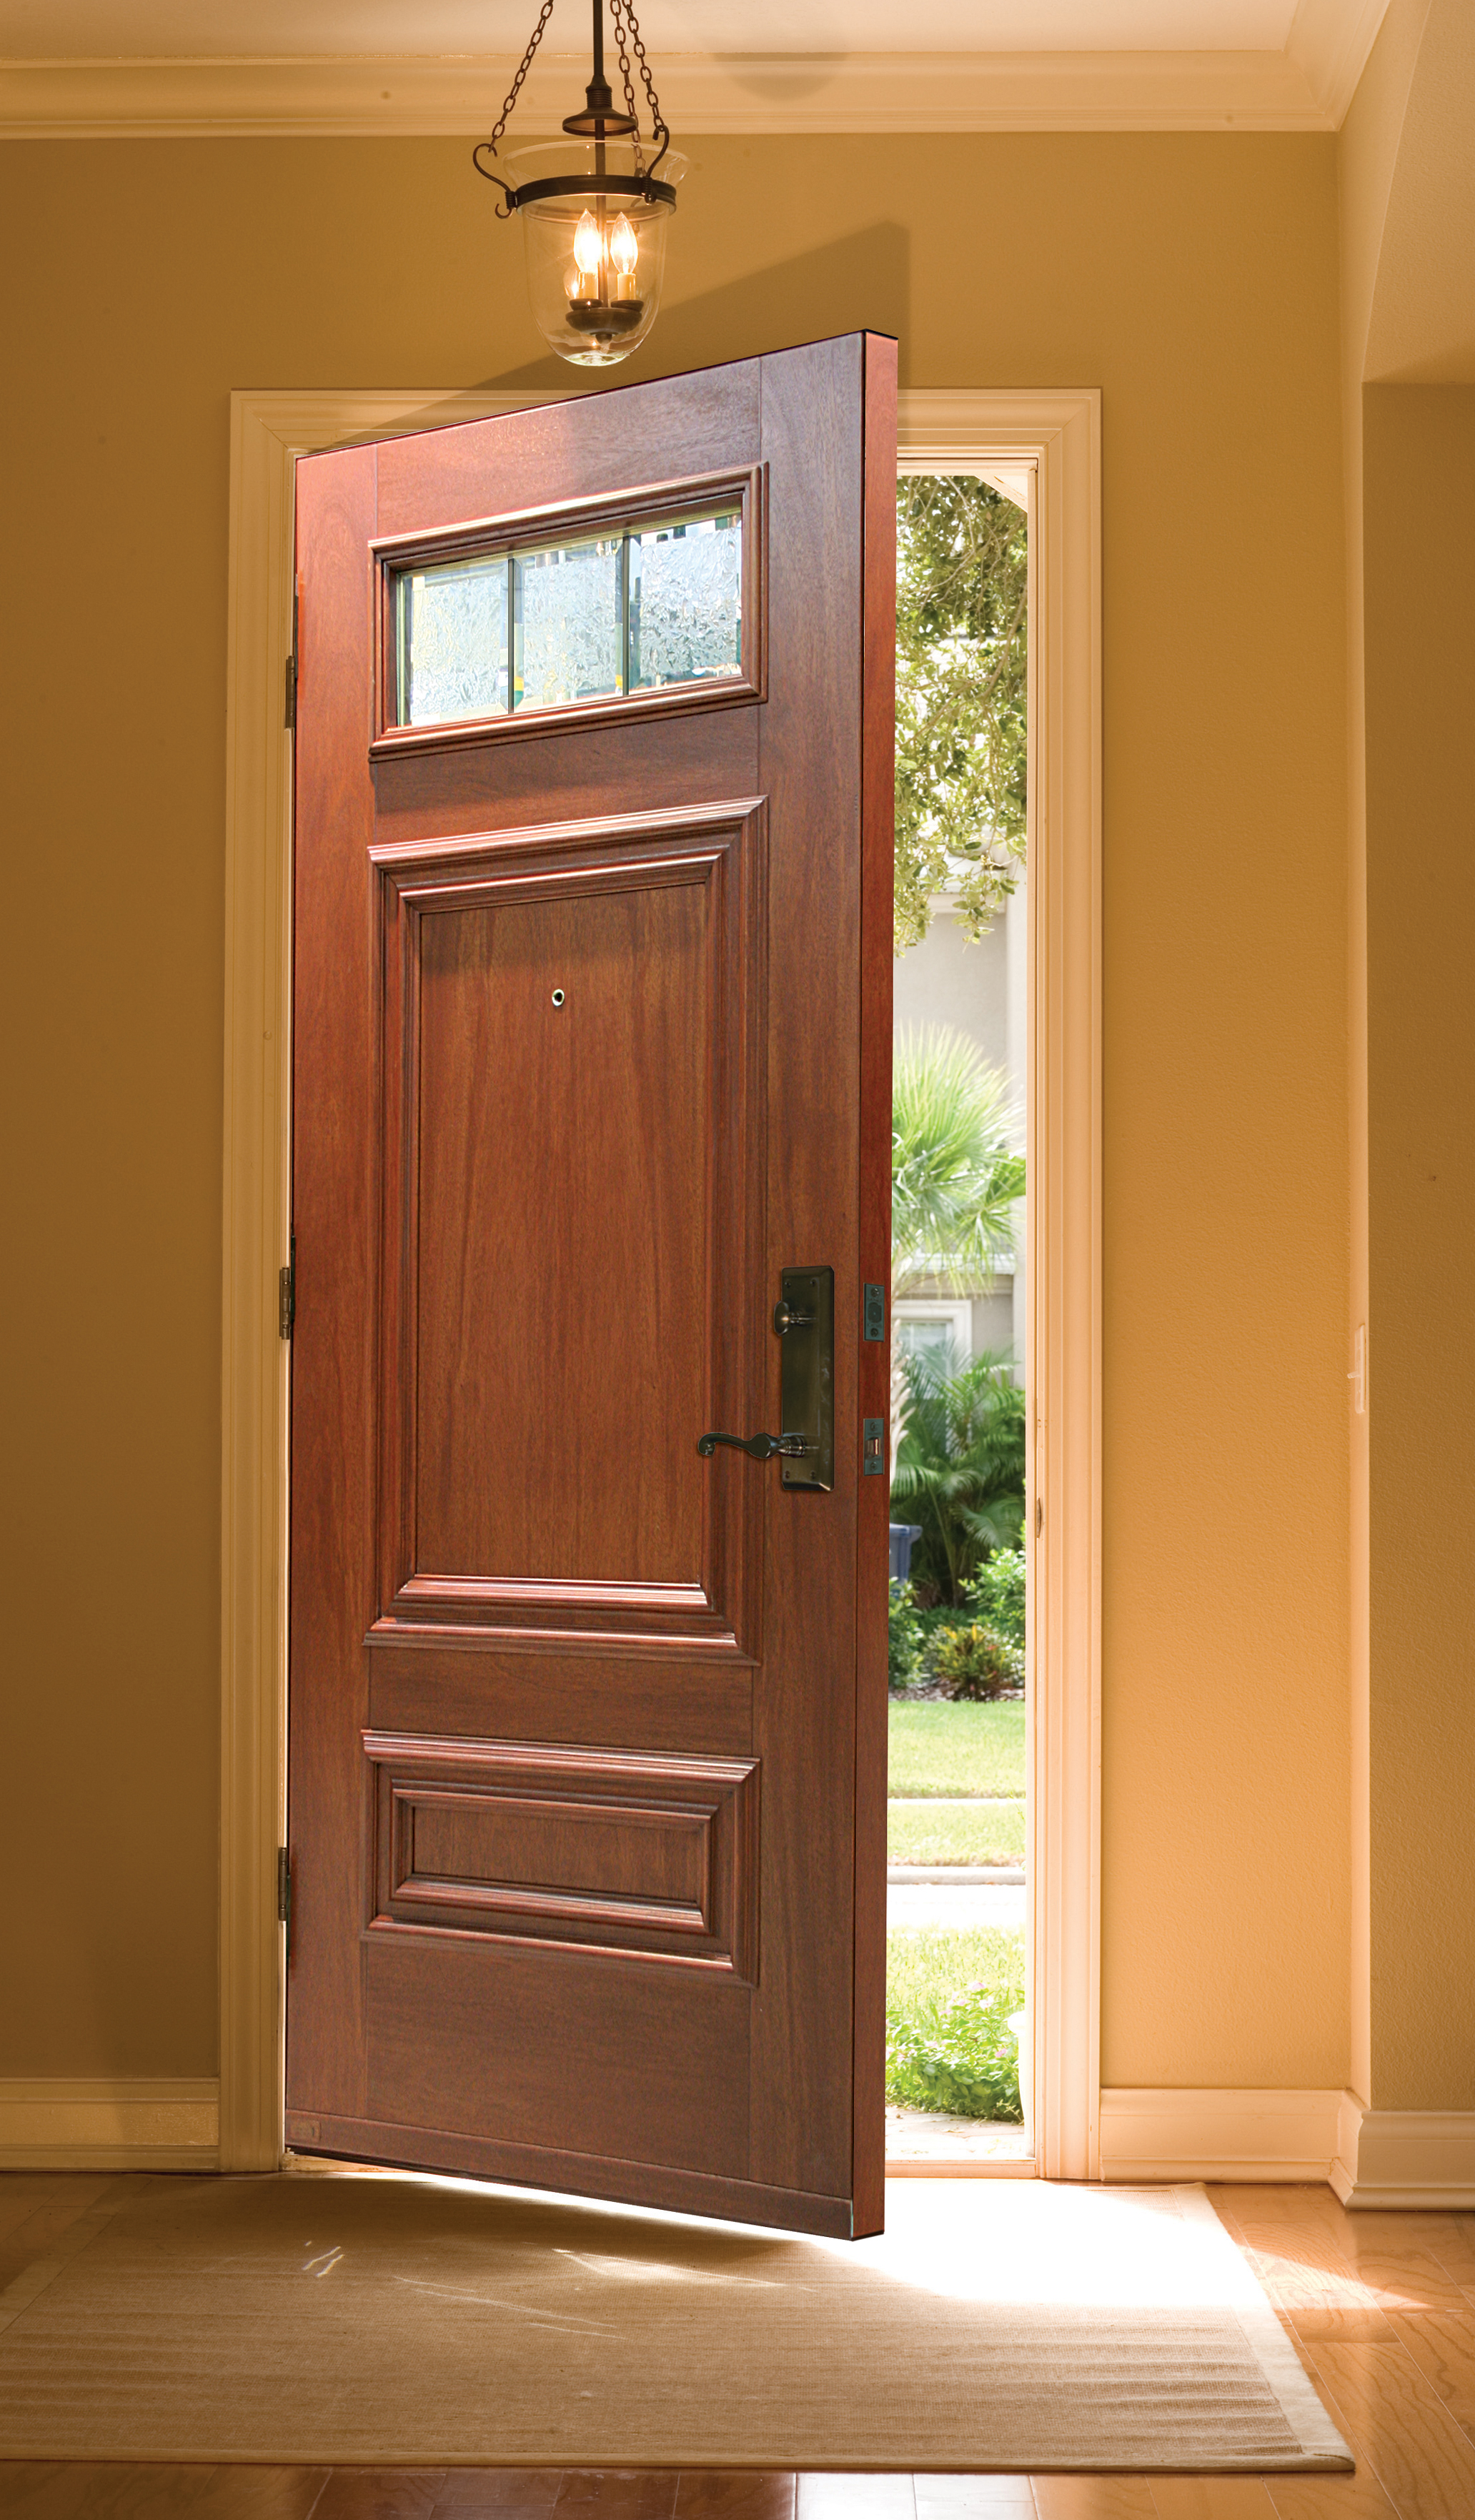 Porte simple avec finition de bois int rieure cerisier for Porte maison interieur